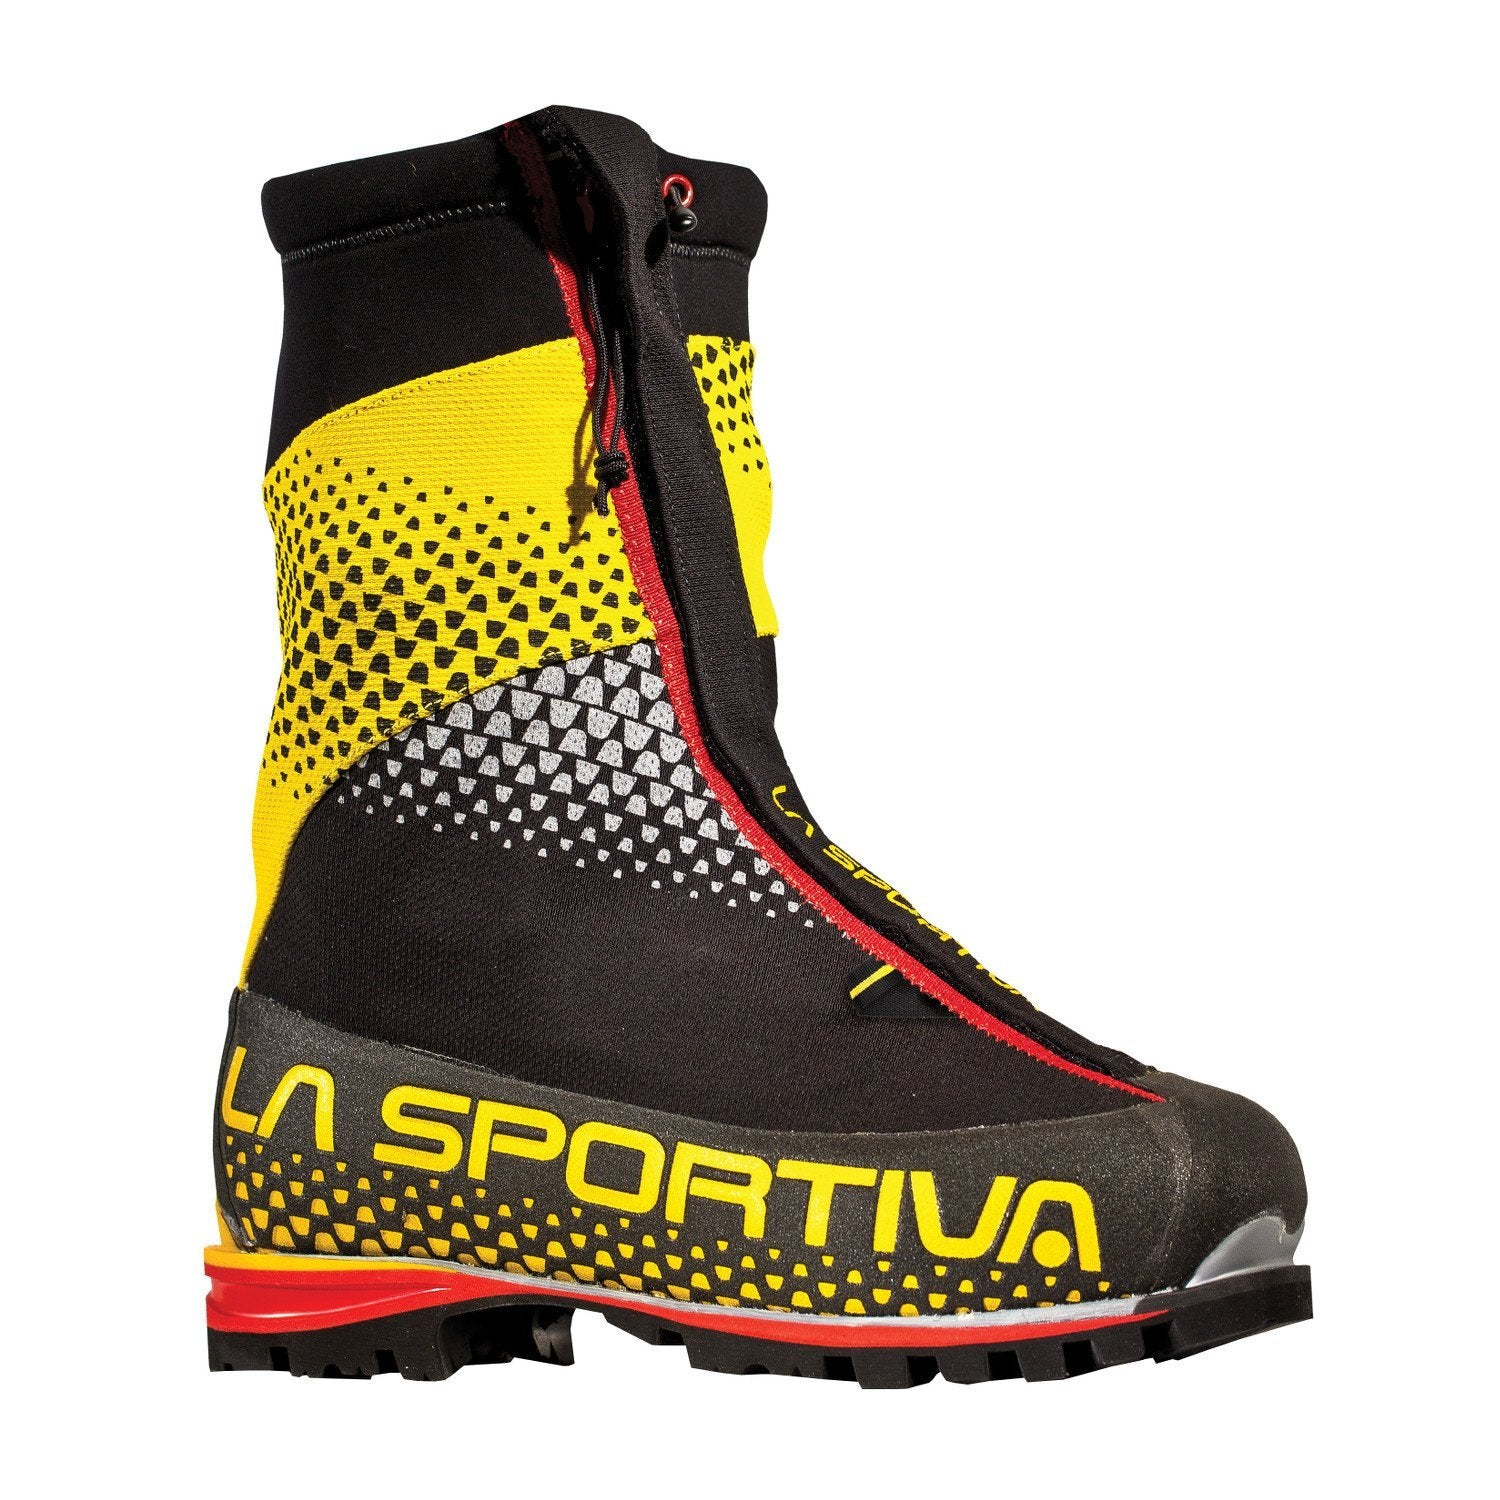 La Sportiva G2 SM Mountaineering Boot, in black and yellow colours